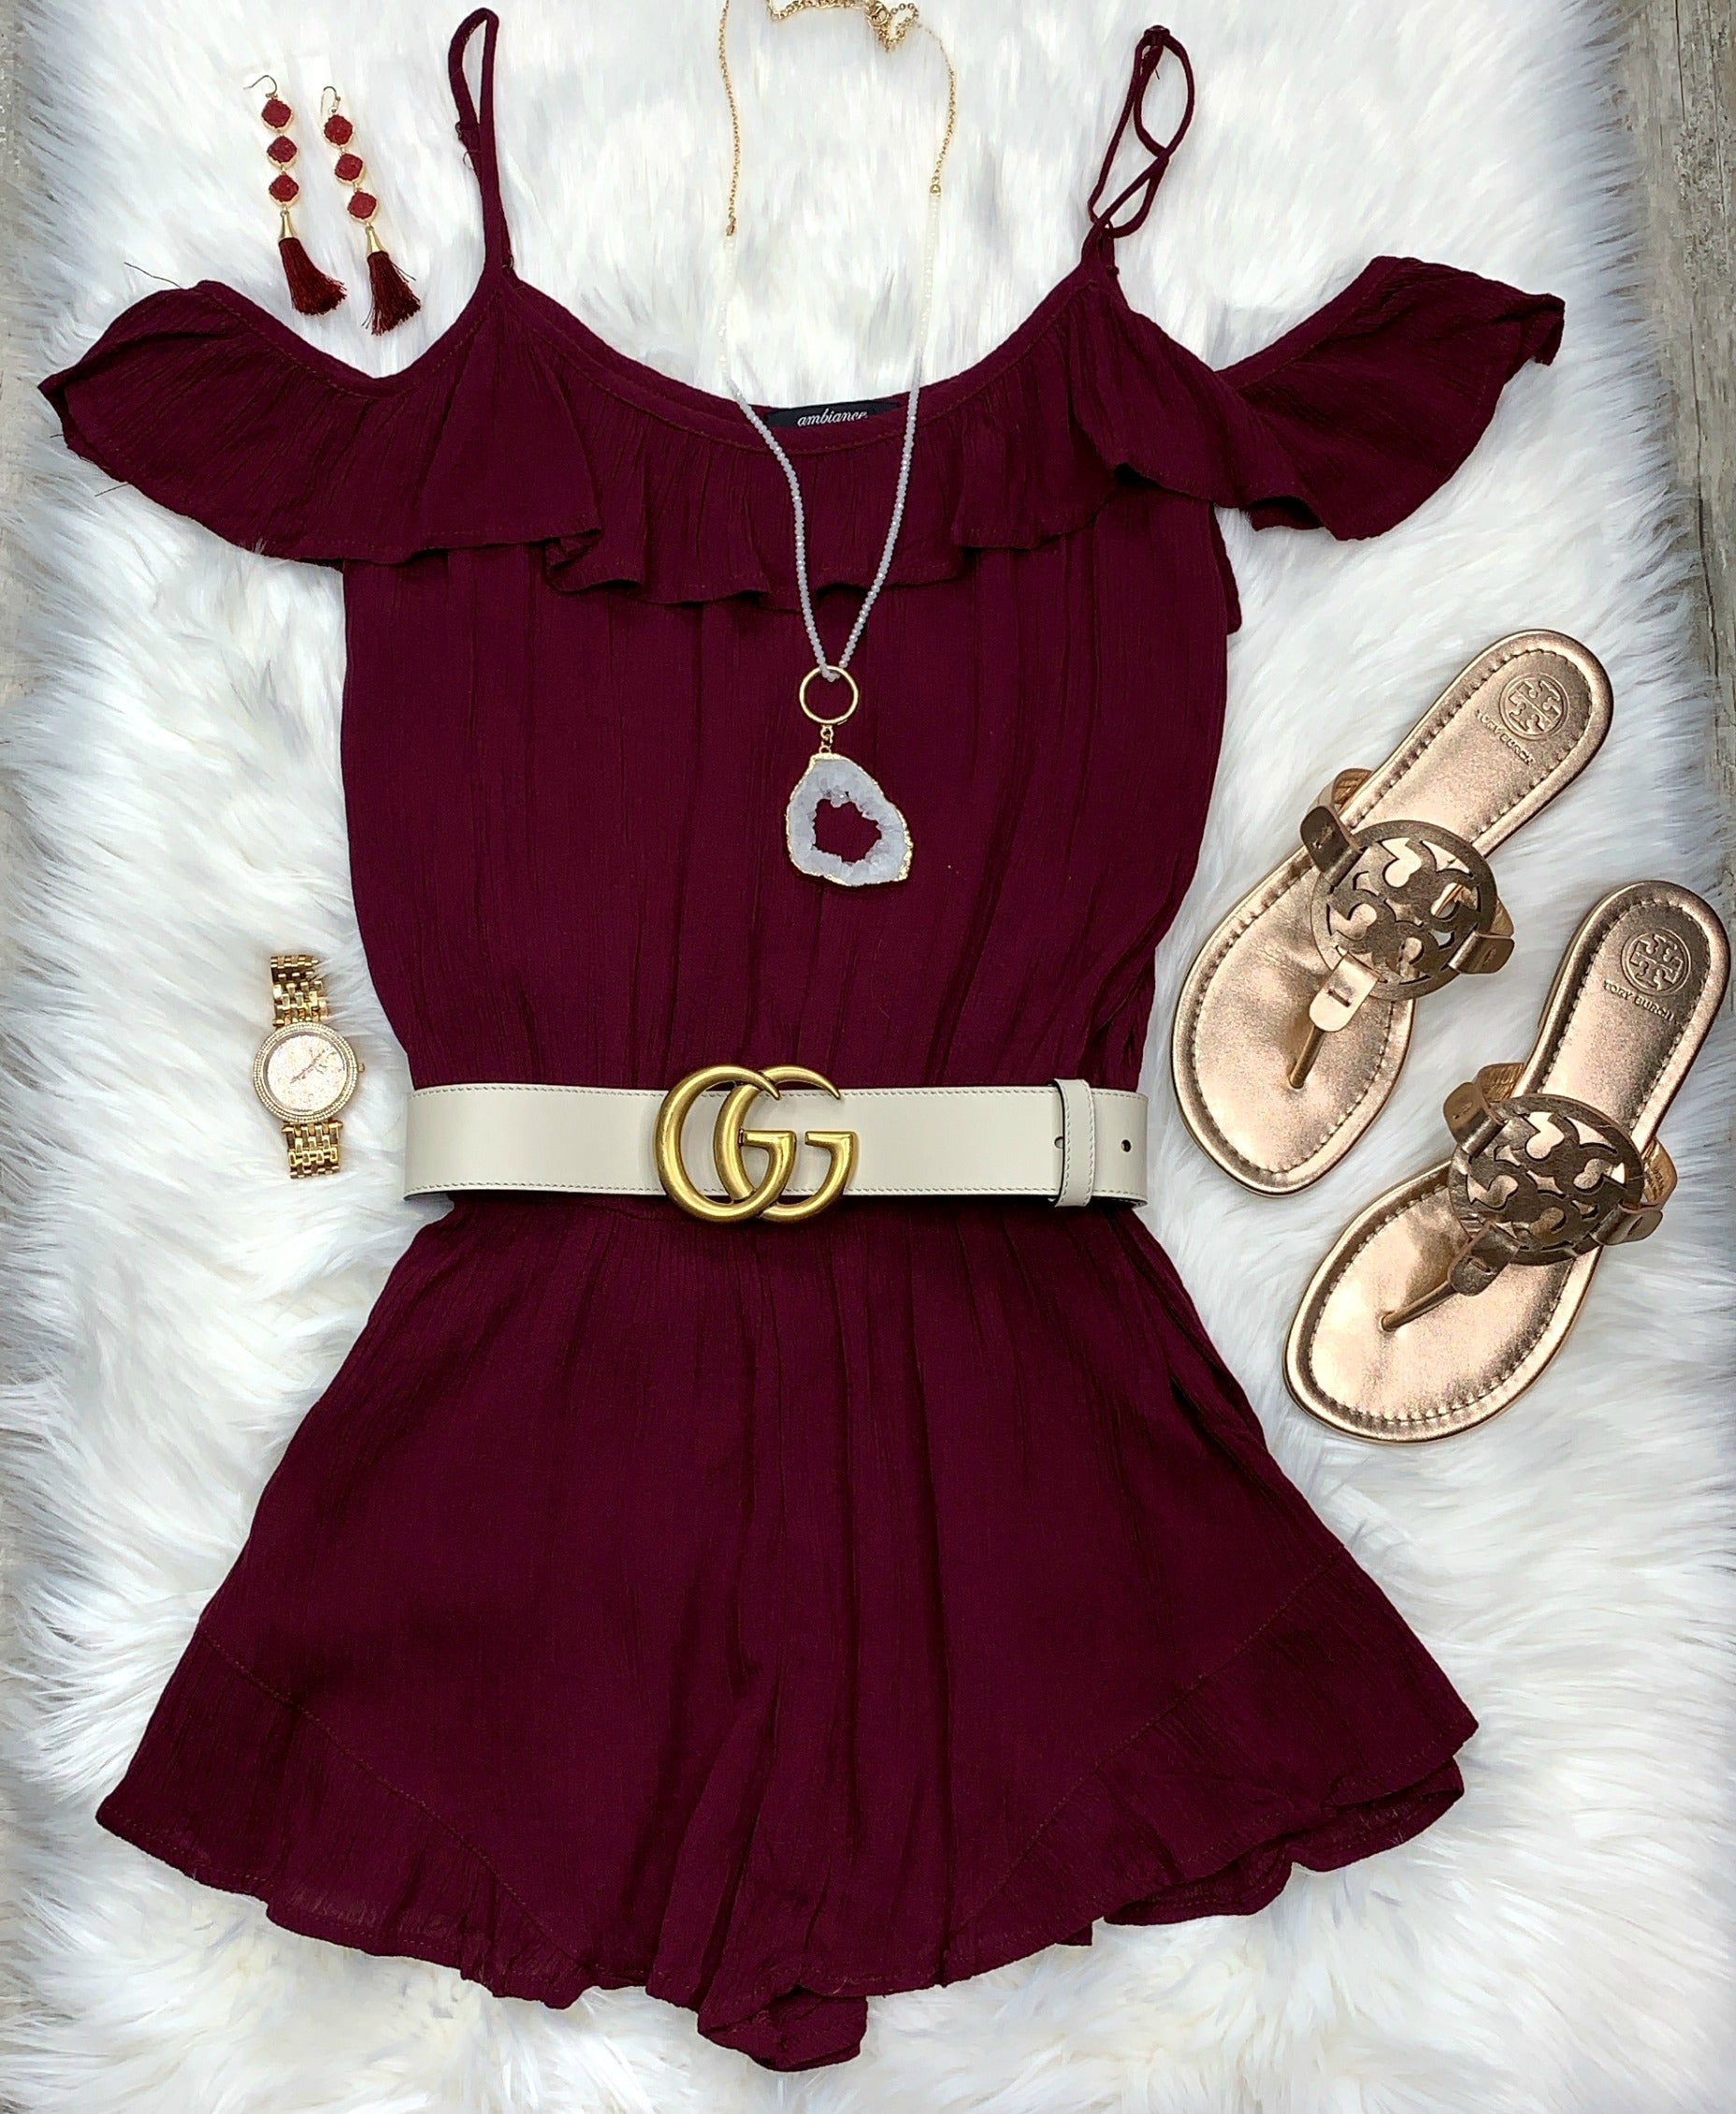 Make It Interesting Ruffled Cold Shoulder Romper - Burgundy